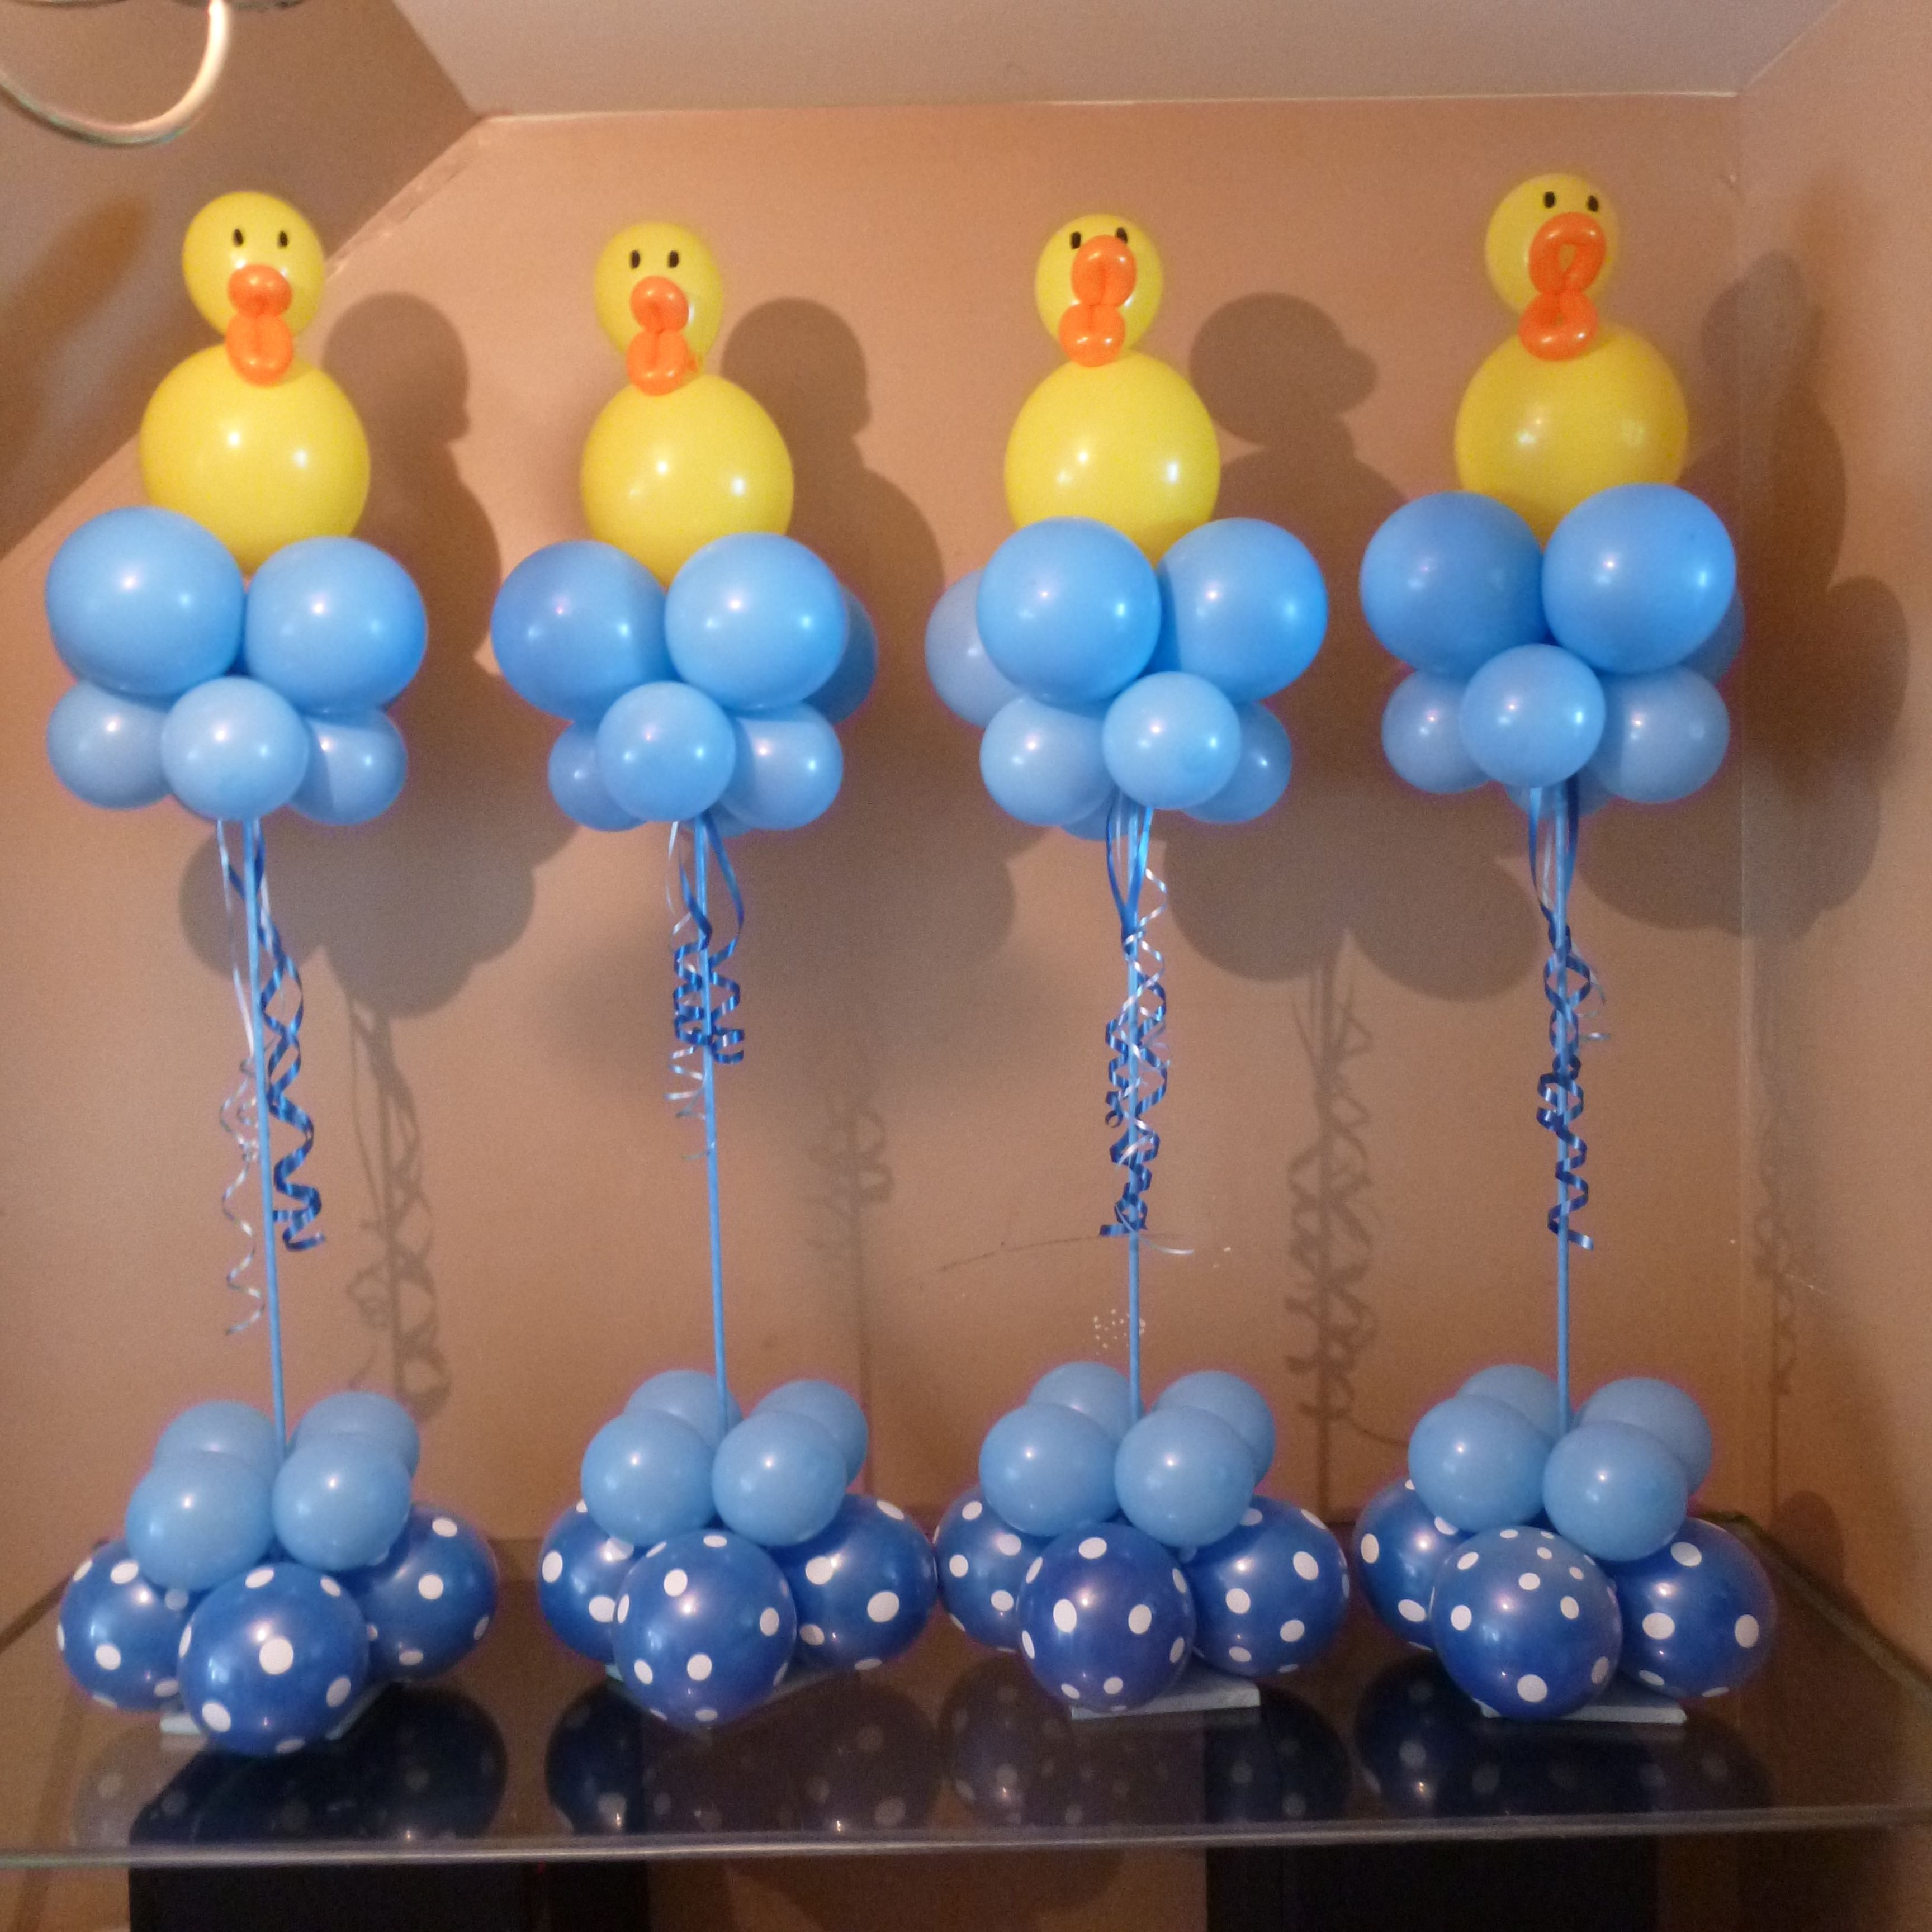 Balloon Decor /Design For Kids Party In Miami, Aventura, Fort Baby Shower  For Boy. Balloons Decoration Ideas For Baby Shower Balloons Deco.